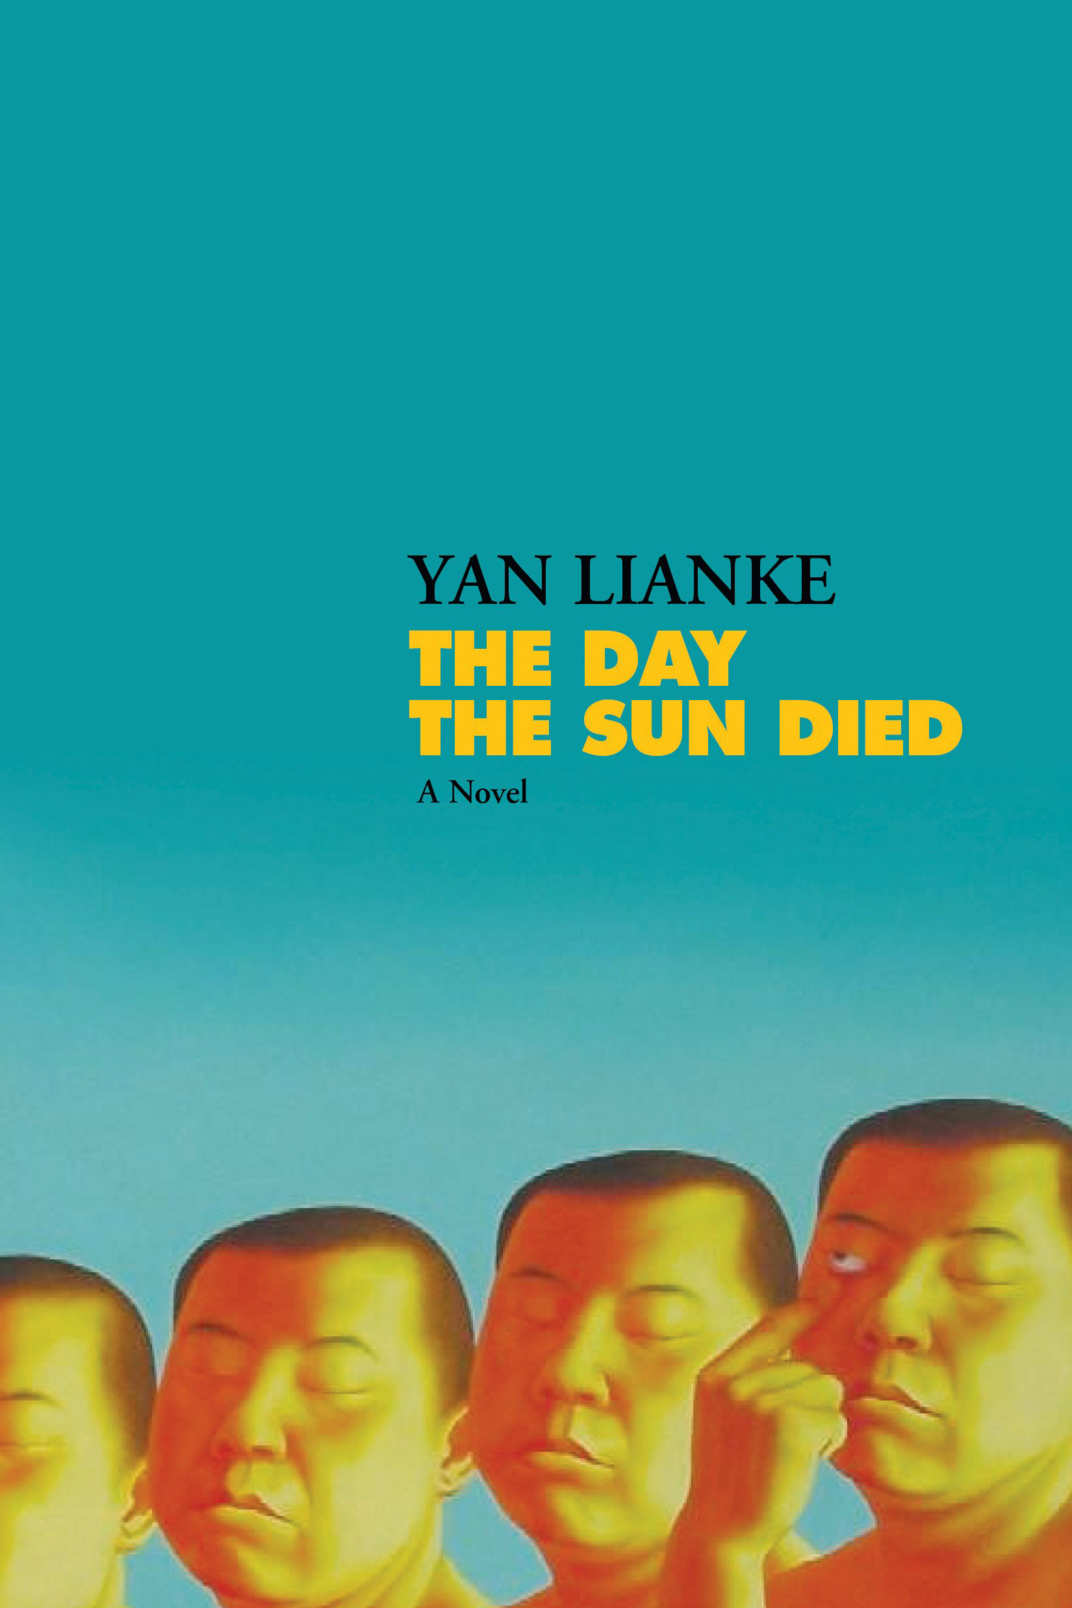 <em>The Day the Sun Died</em>, by Yan Lianke, translated by Carlos Rojas (Grove, December 11)